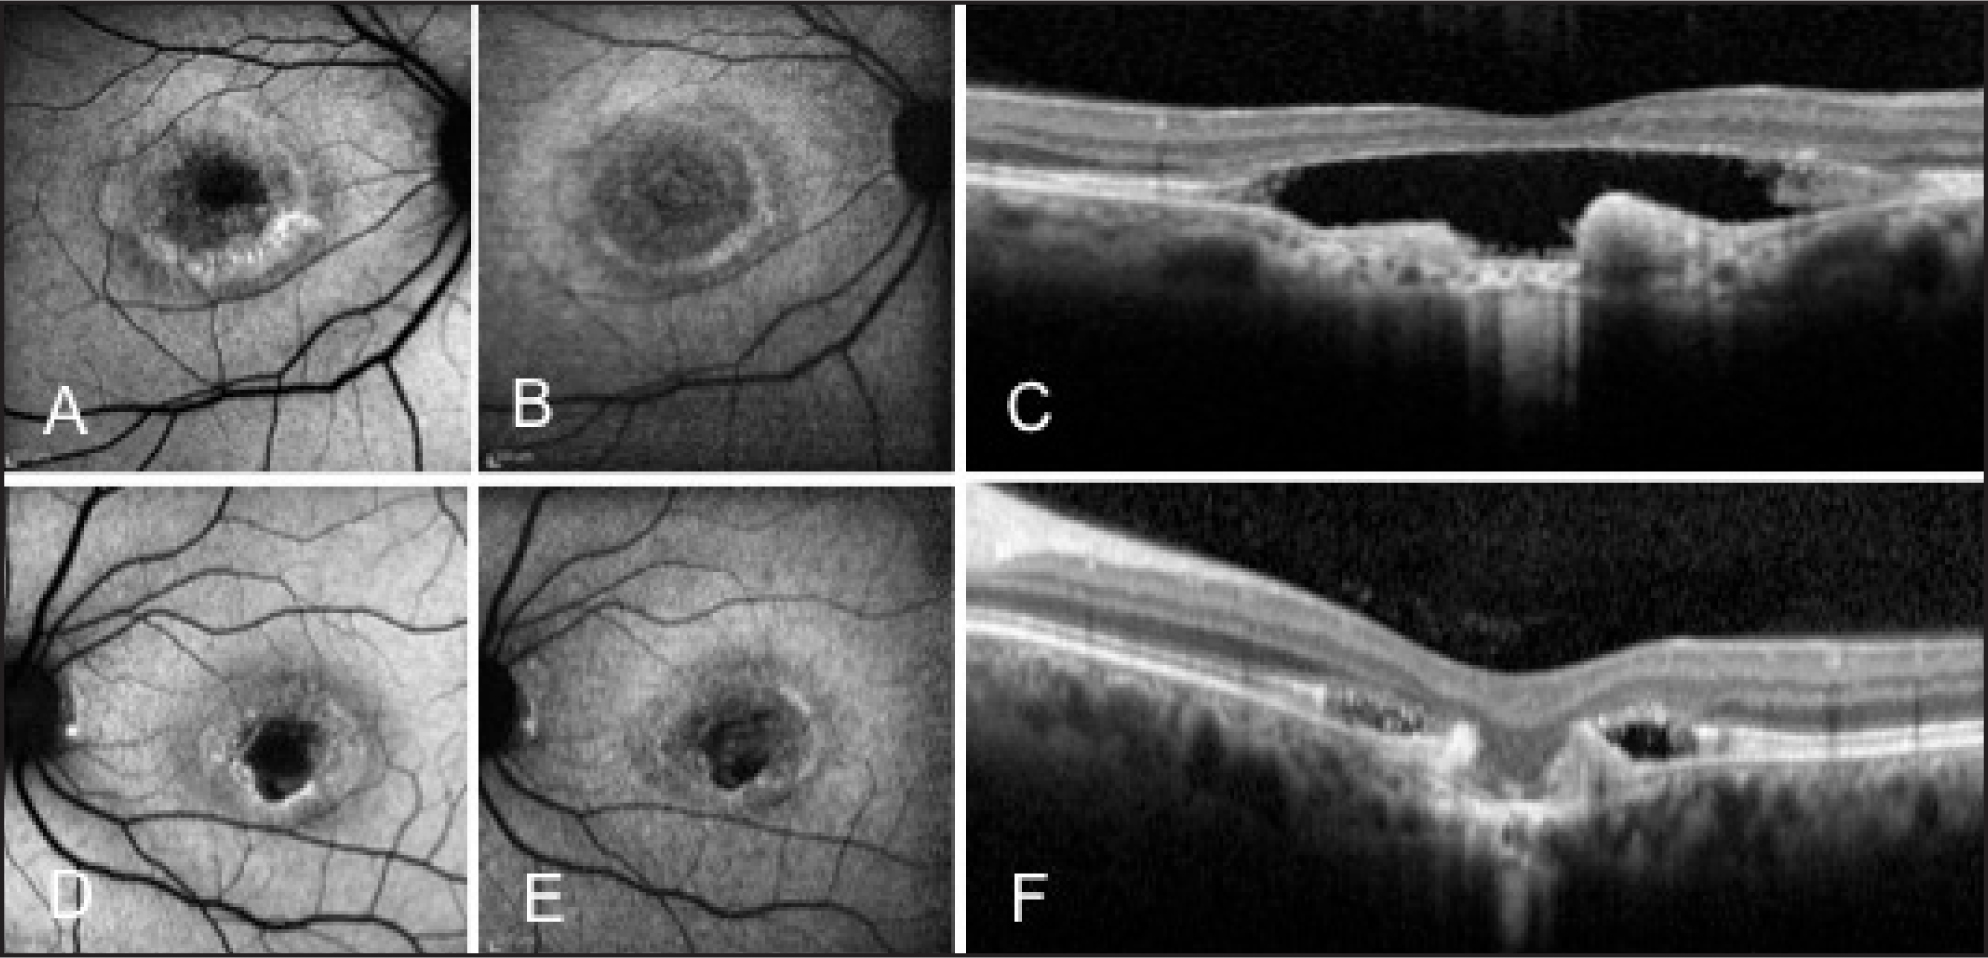 Short-wavelength (A, D) and near-infrared fundus autofluorescence (B, E) of the right and left eyes, showing bilateral vitelliform macular dystrophy with accumulation of yellowish material and atrophic changes. SD-OCT (C, F) showing focal choroidal excavation in both eyes that corresponded to the center of the macular atrophy.